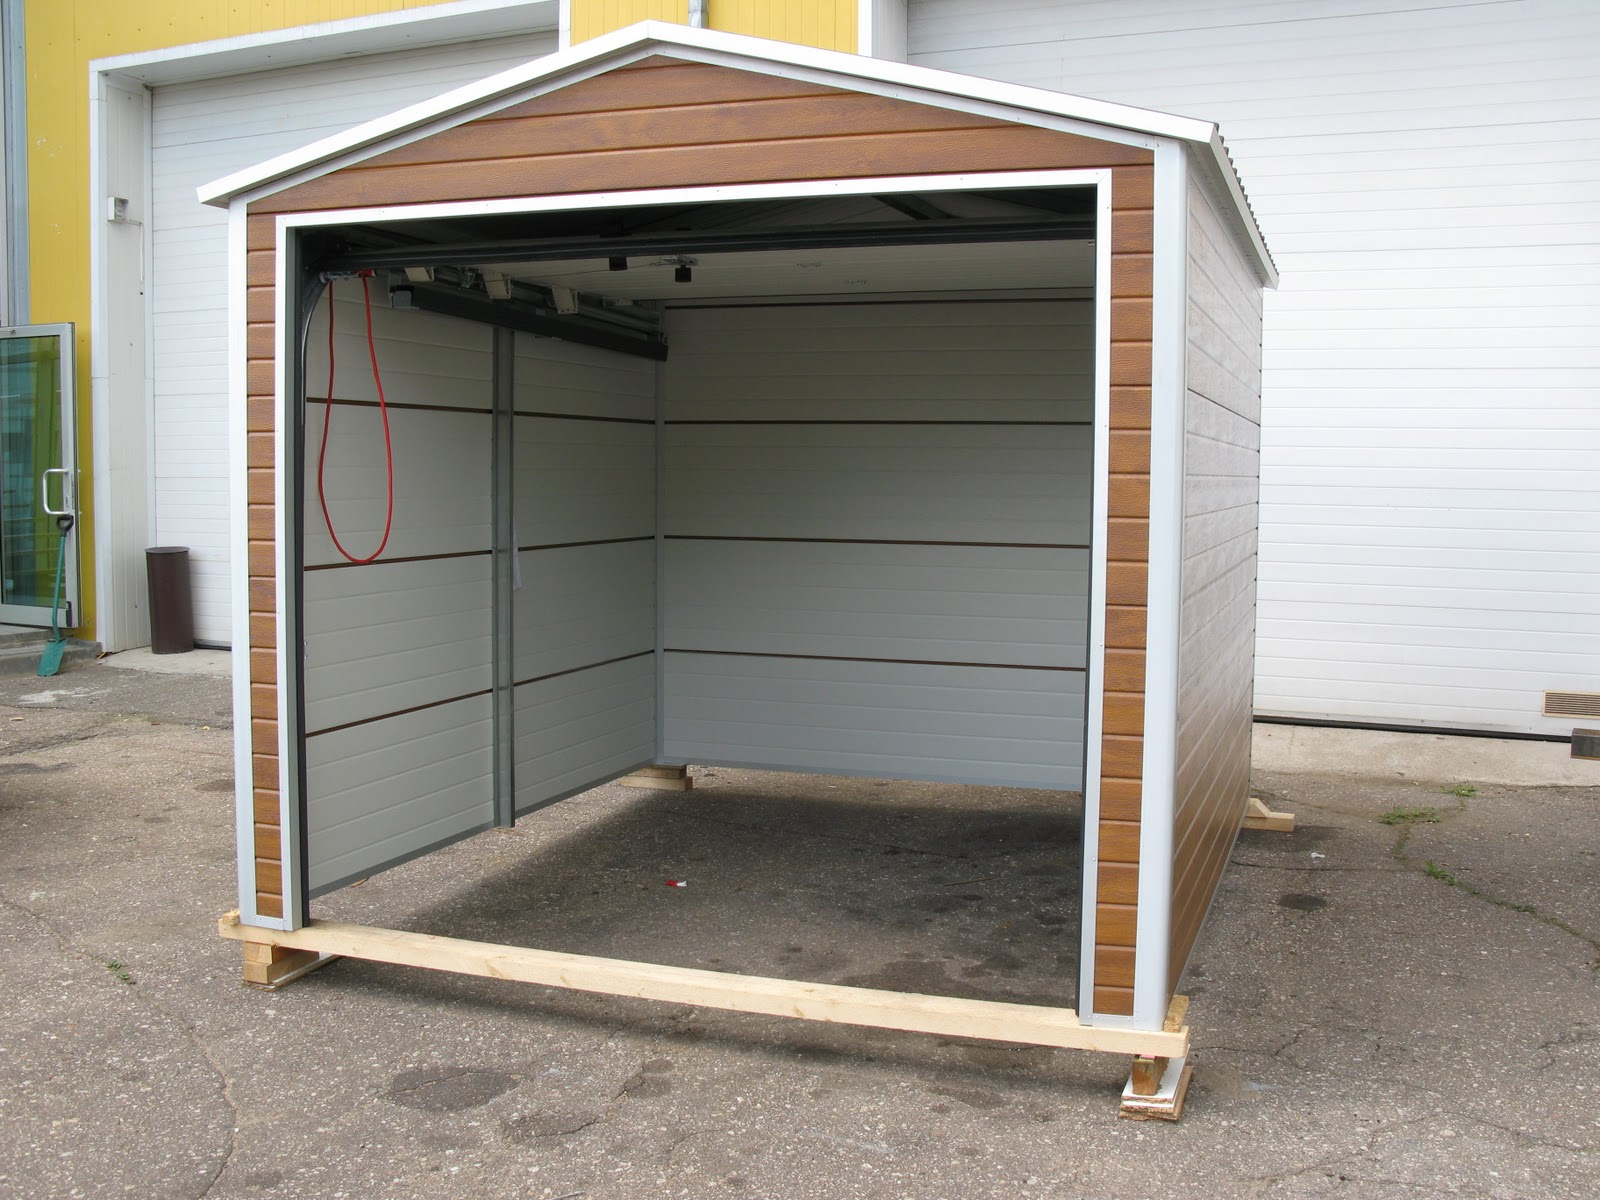 Diy garage or garden shed ryterna garage doors for Garden shed ventilation